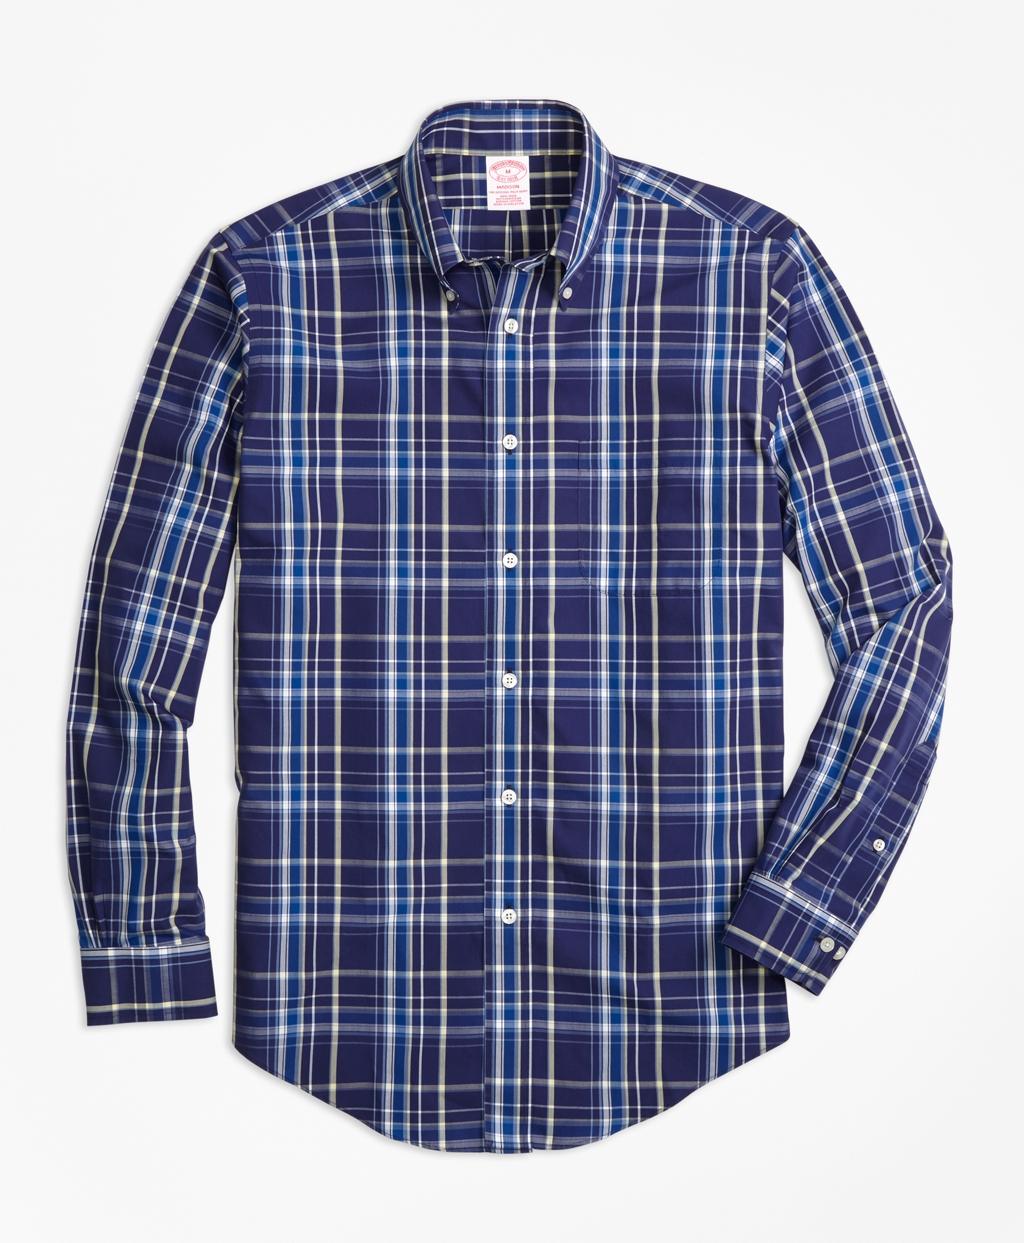 Brooks brothers non iron madison fit navy plaid sport for Navy blue plaid shirt